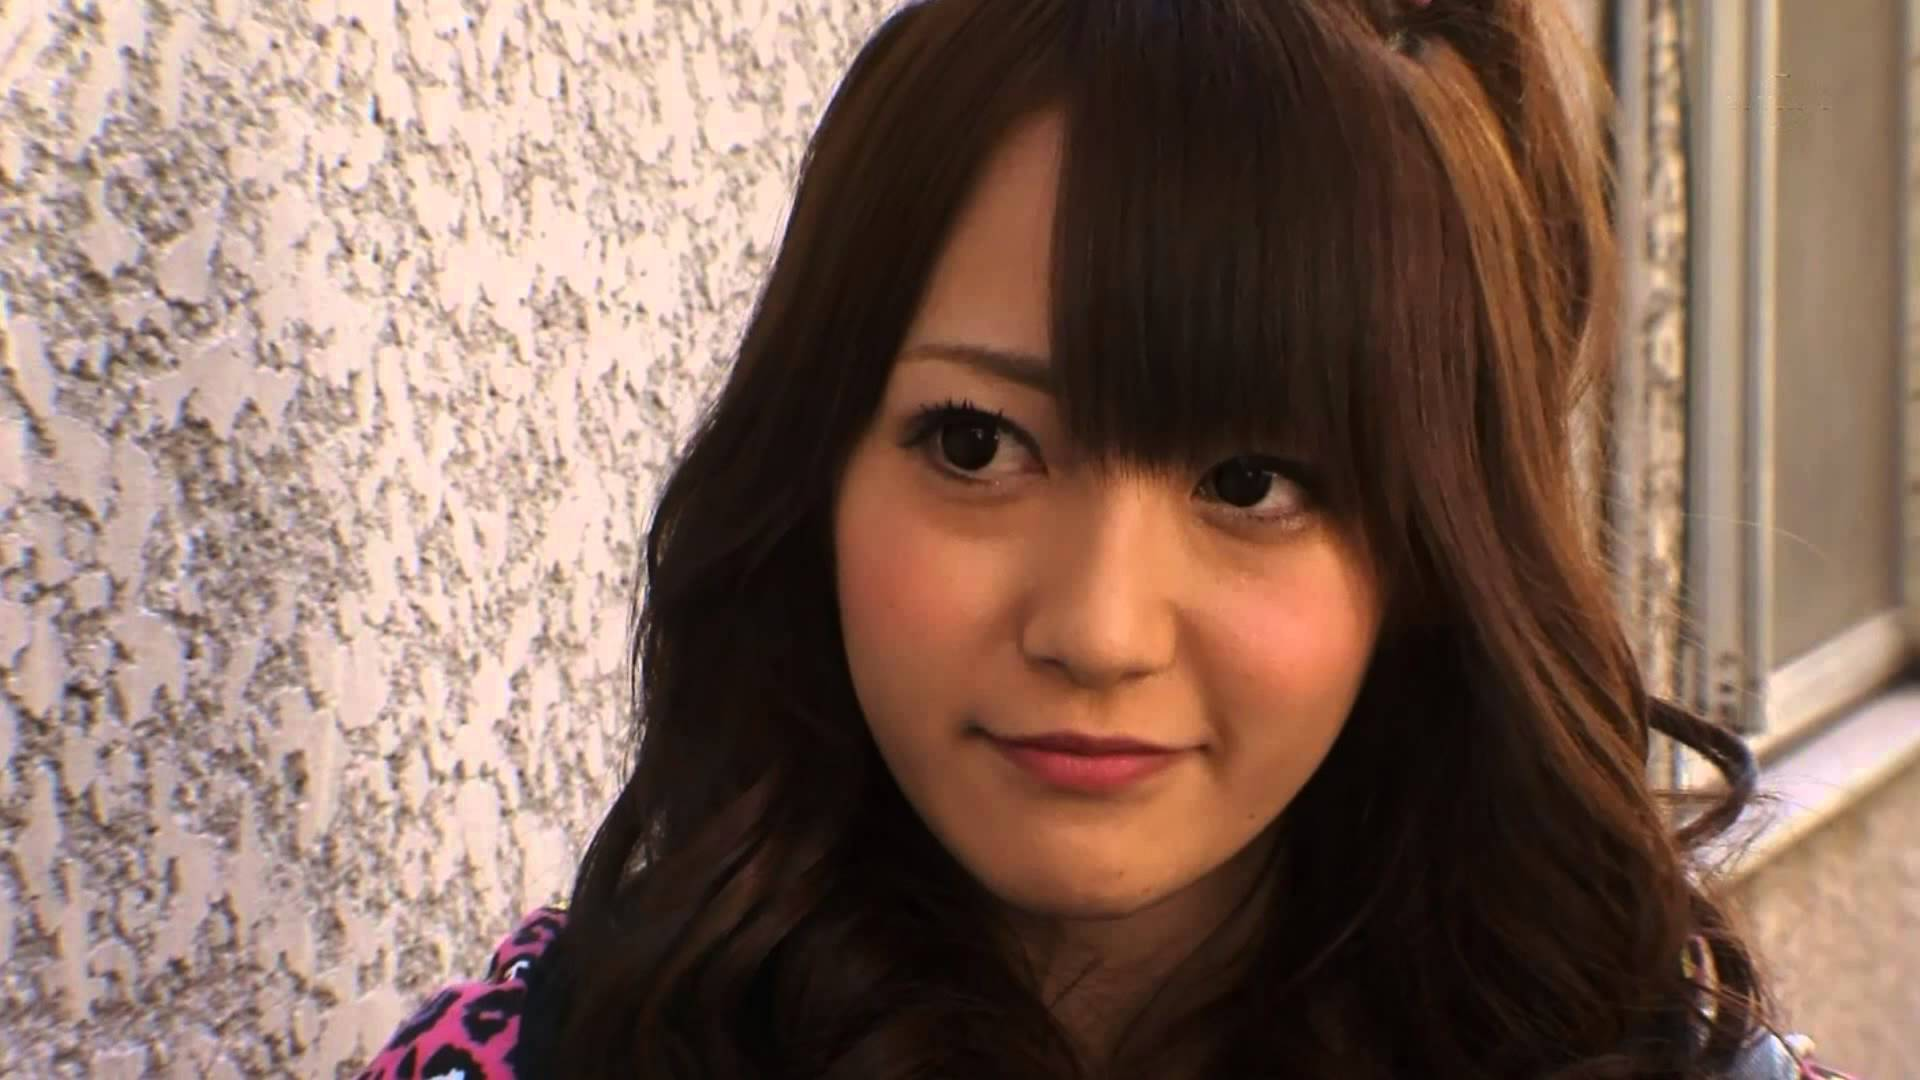 5a1c1a428781a former akb 48 · expectation for future as voice actor of sato ami maxresdefault.jpg - 元AKB48・佐藤亜美菜の声優としての今後に期待